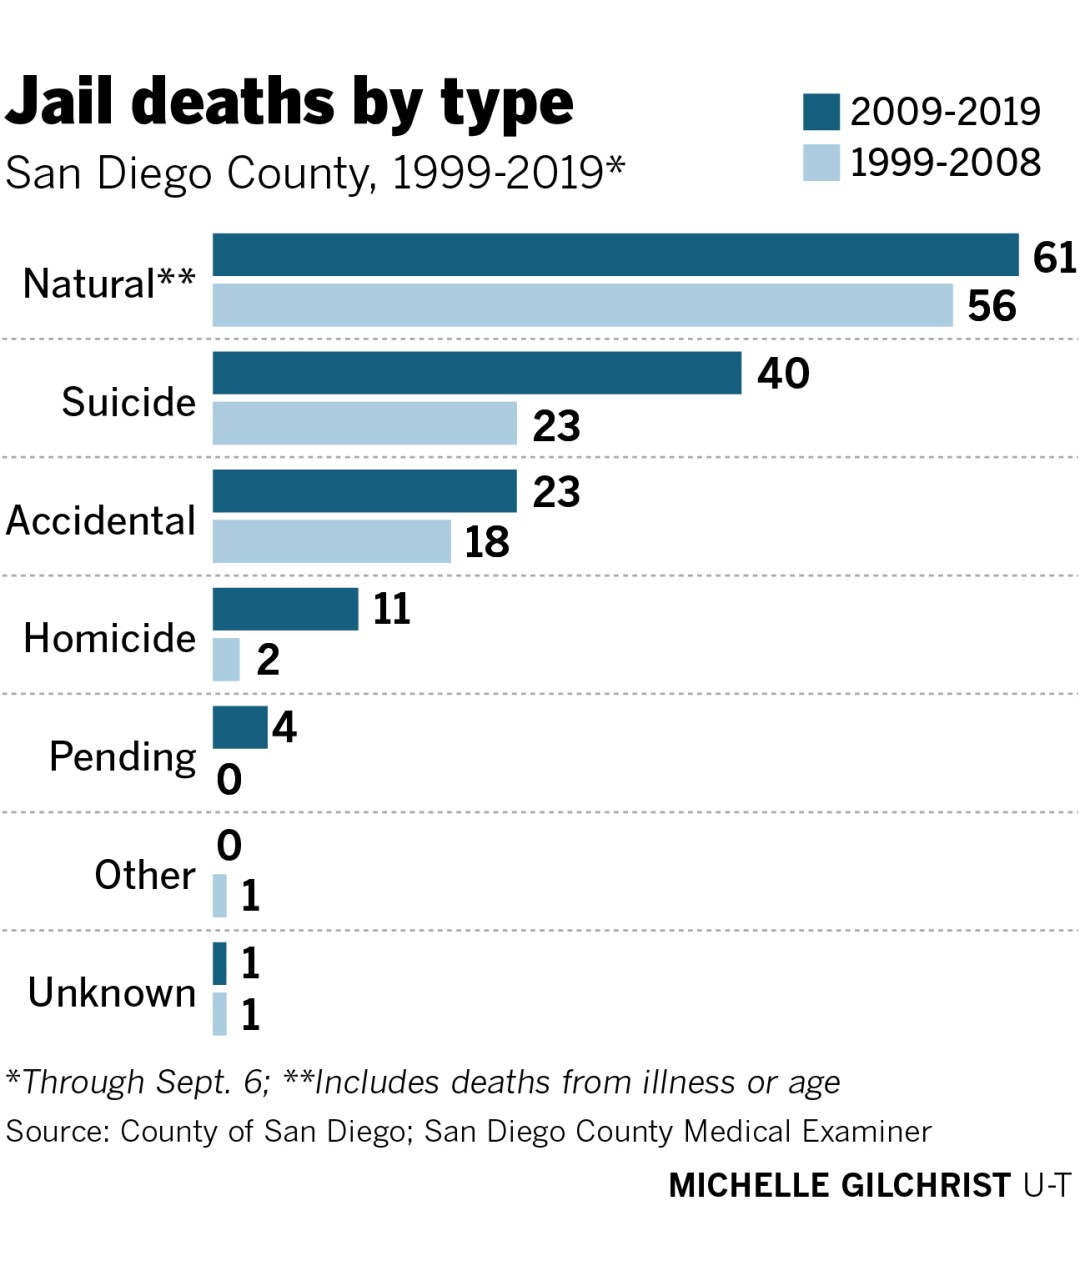 465930-w2-sd-id-g-jail-deaths-by-type.jpg